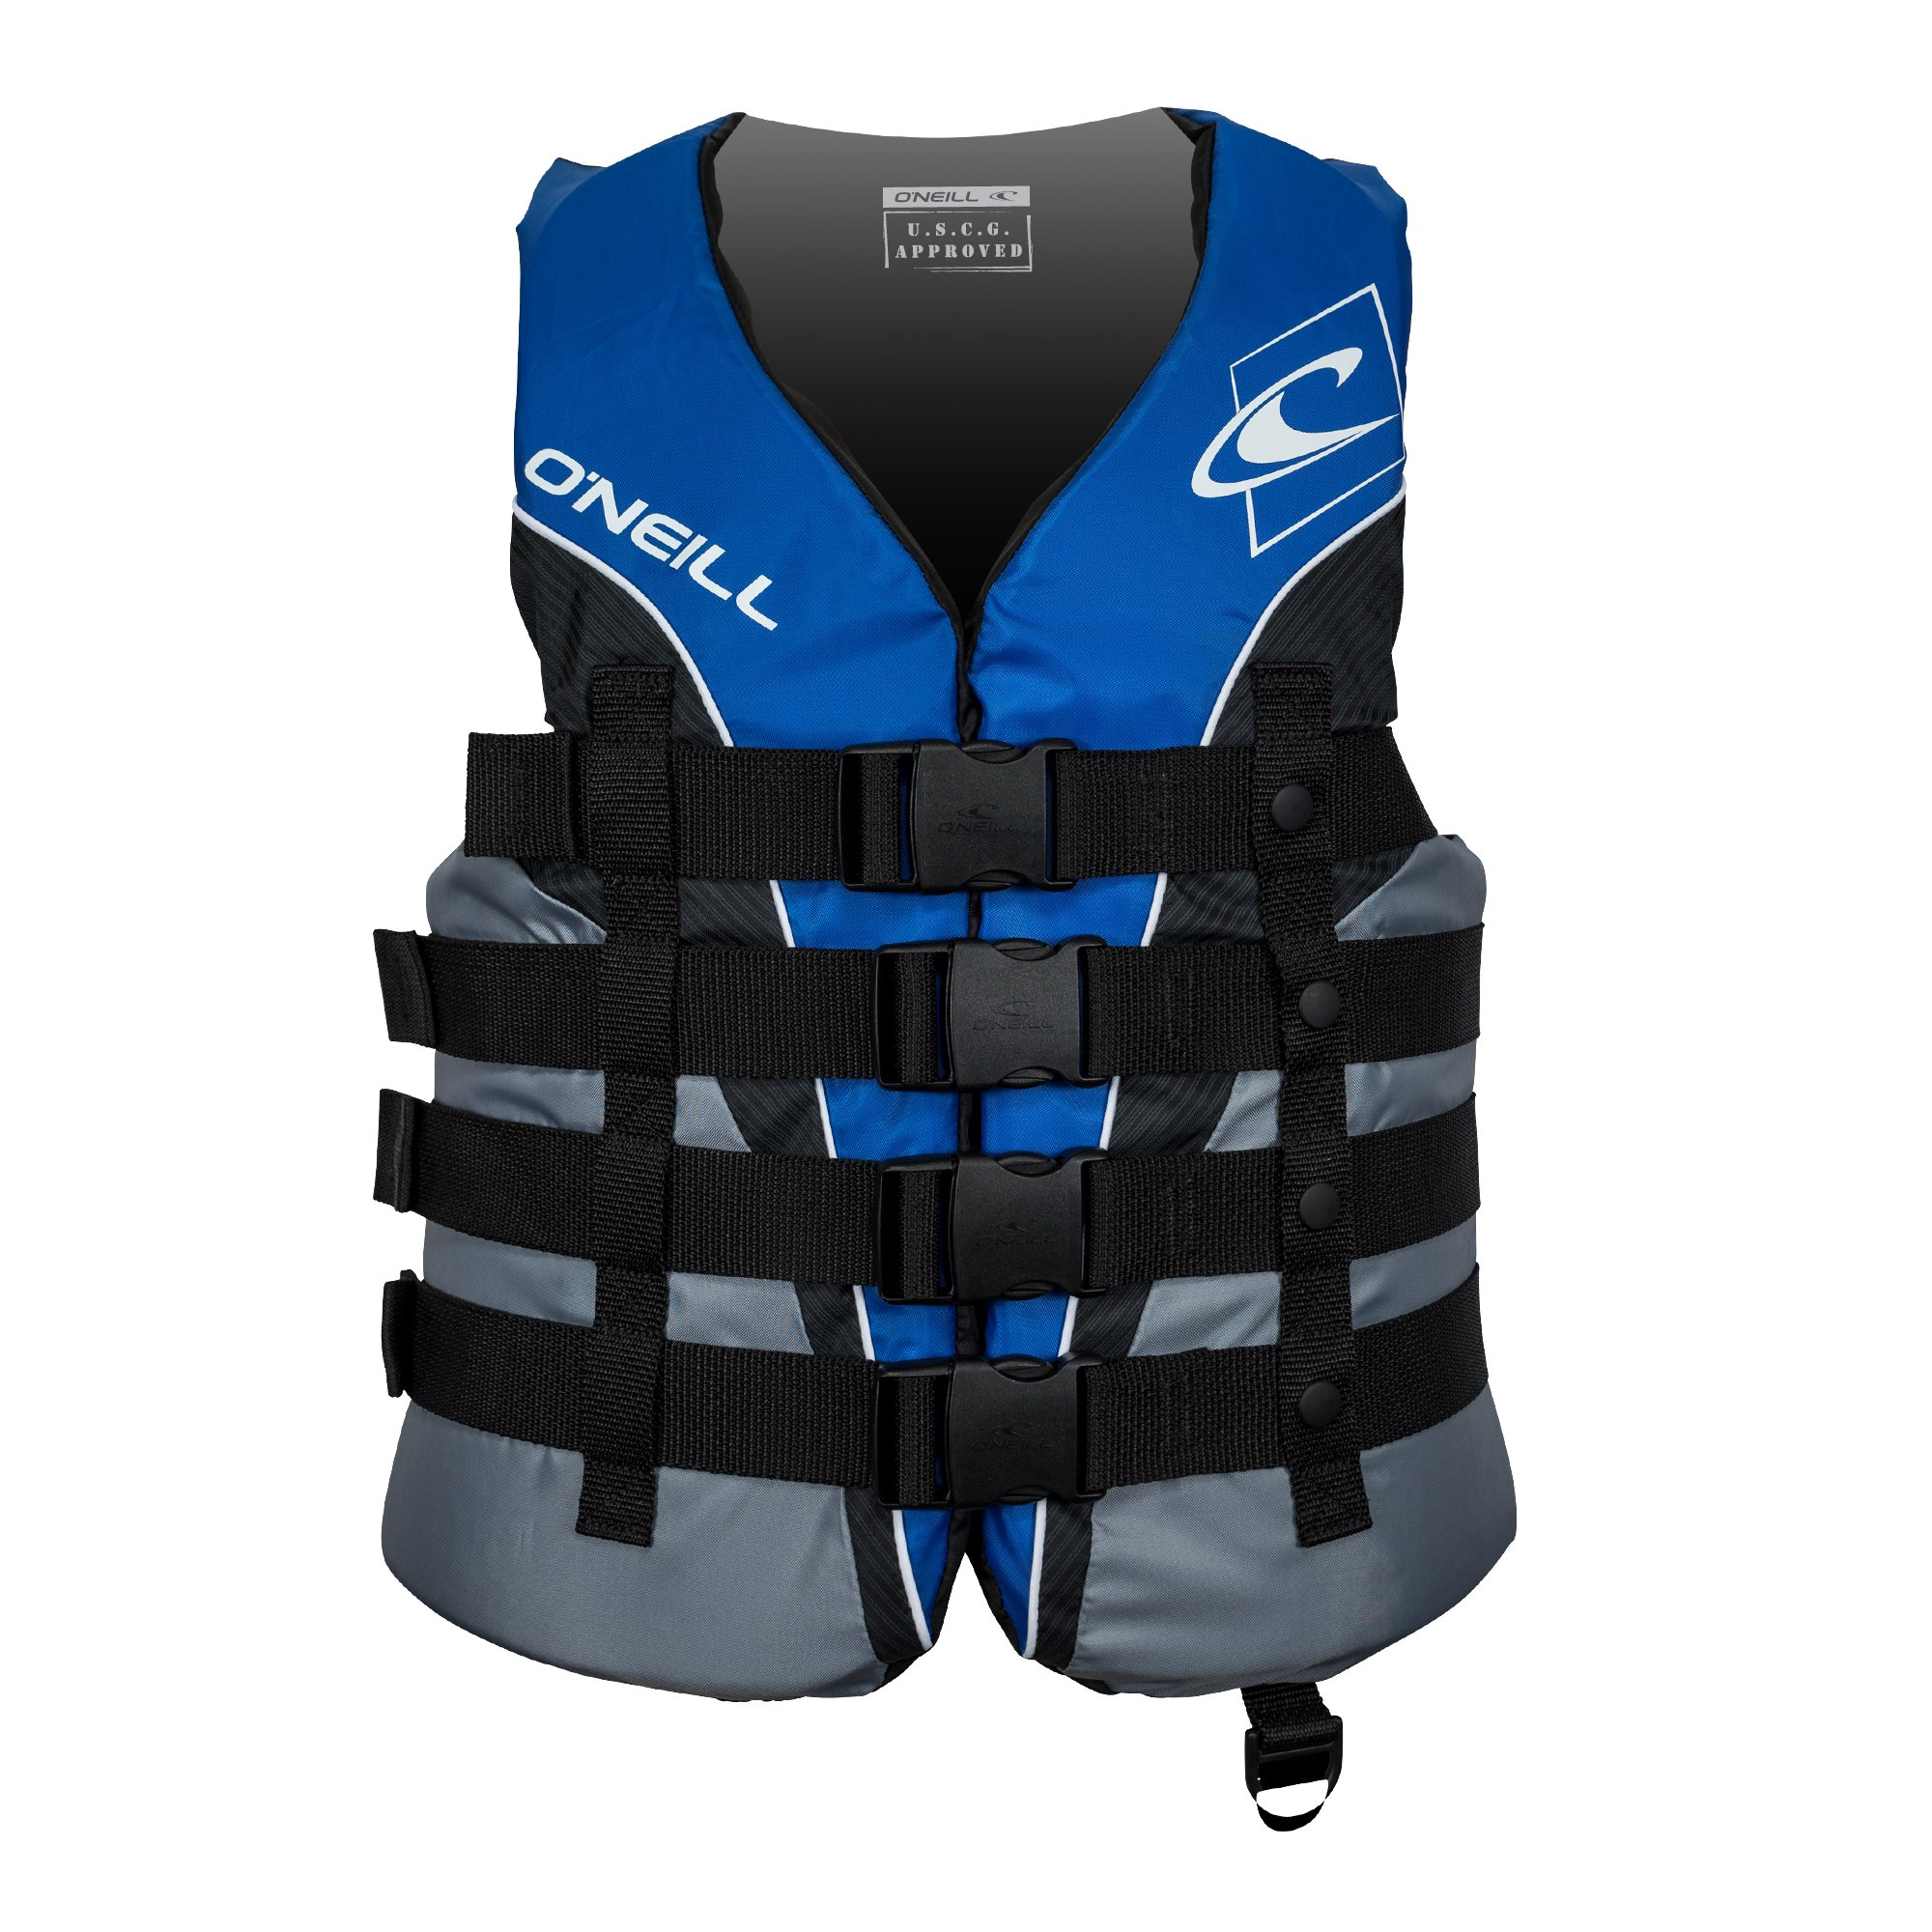 O'Neill  Men's Superlite USCG Life Vest, Pacific/Smoke/Black/White,Small by O'Neill Wetsuits (Image #1)